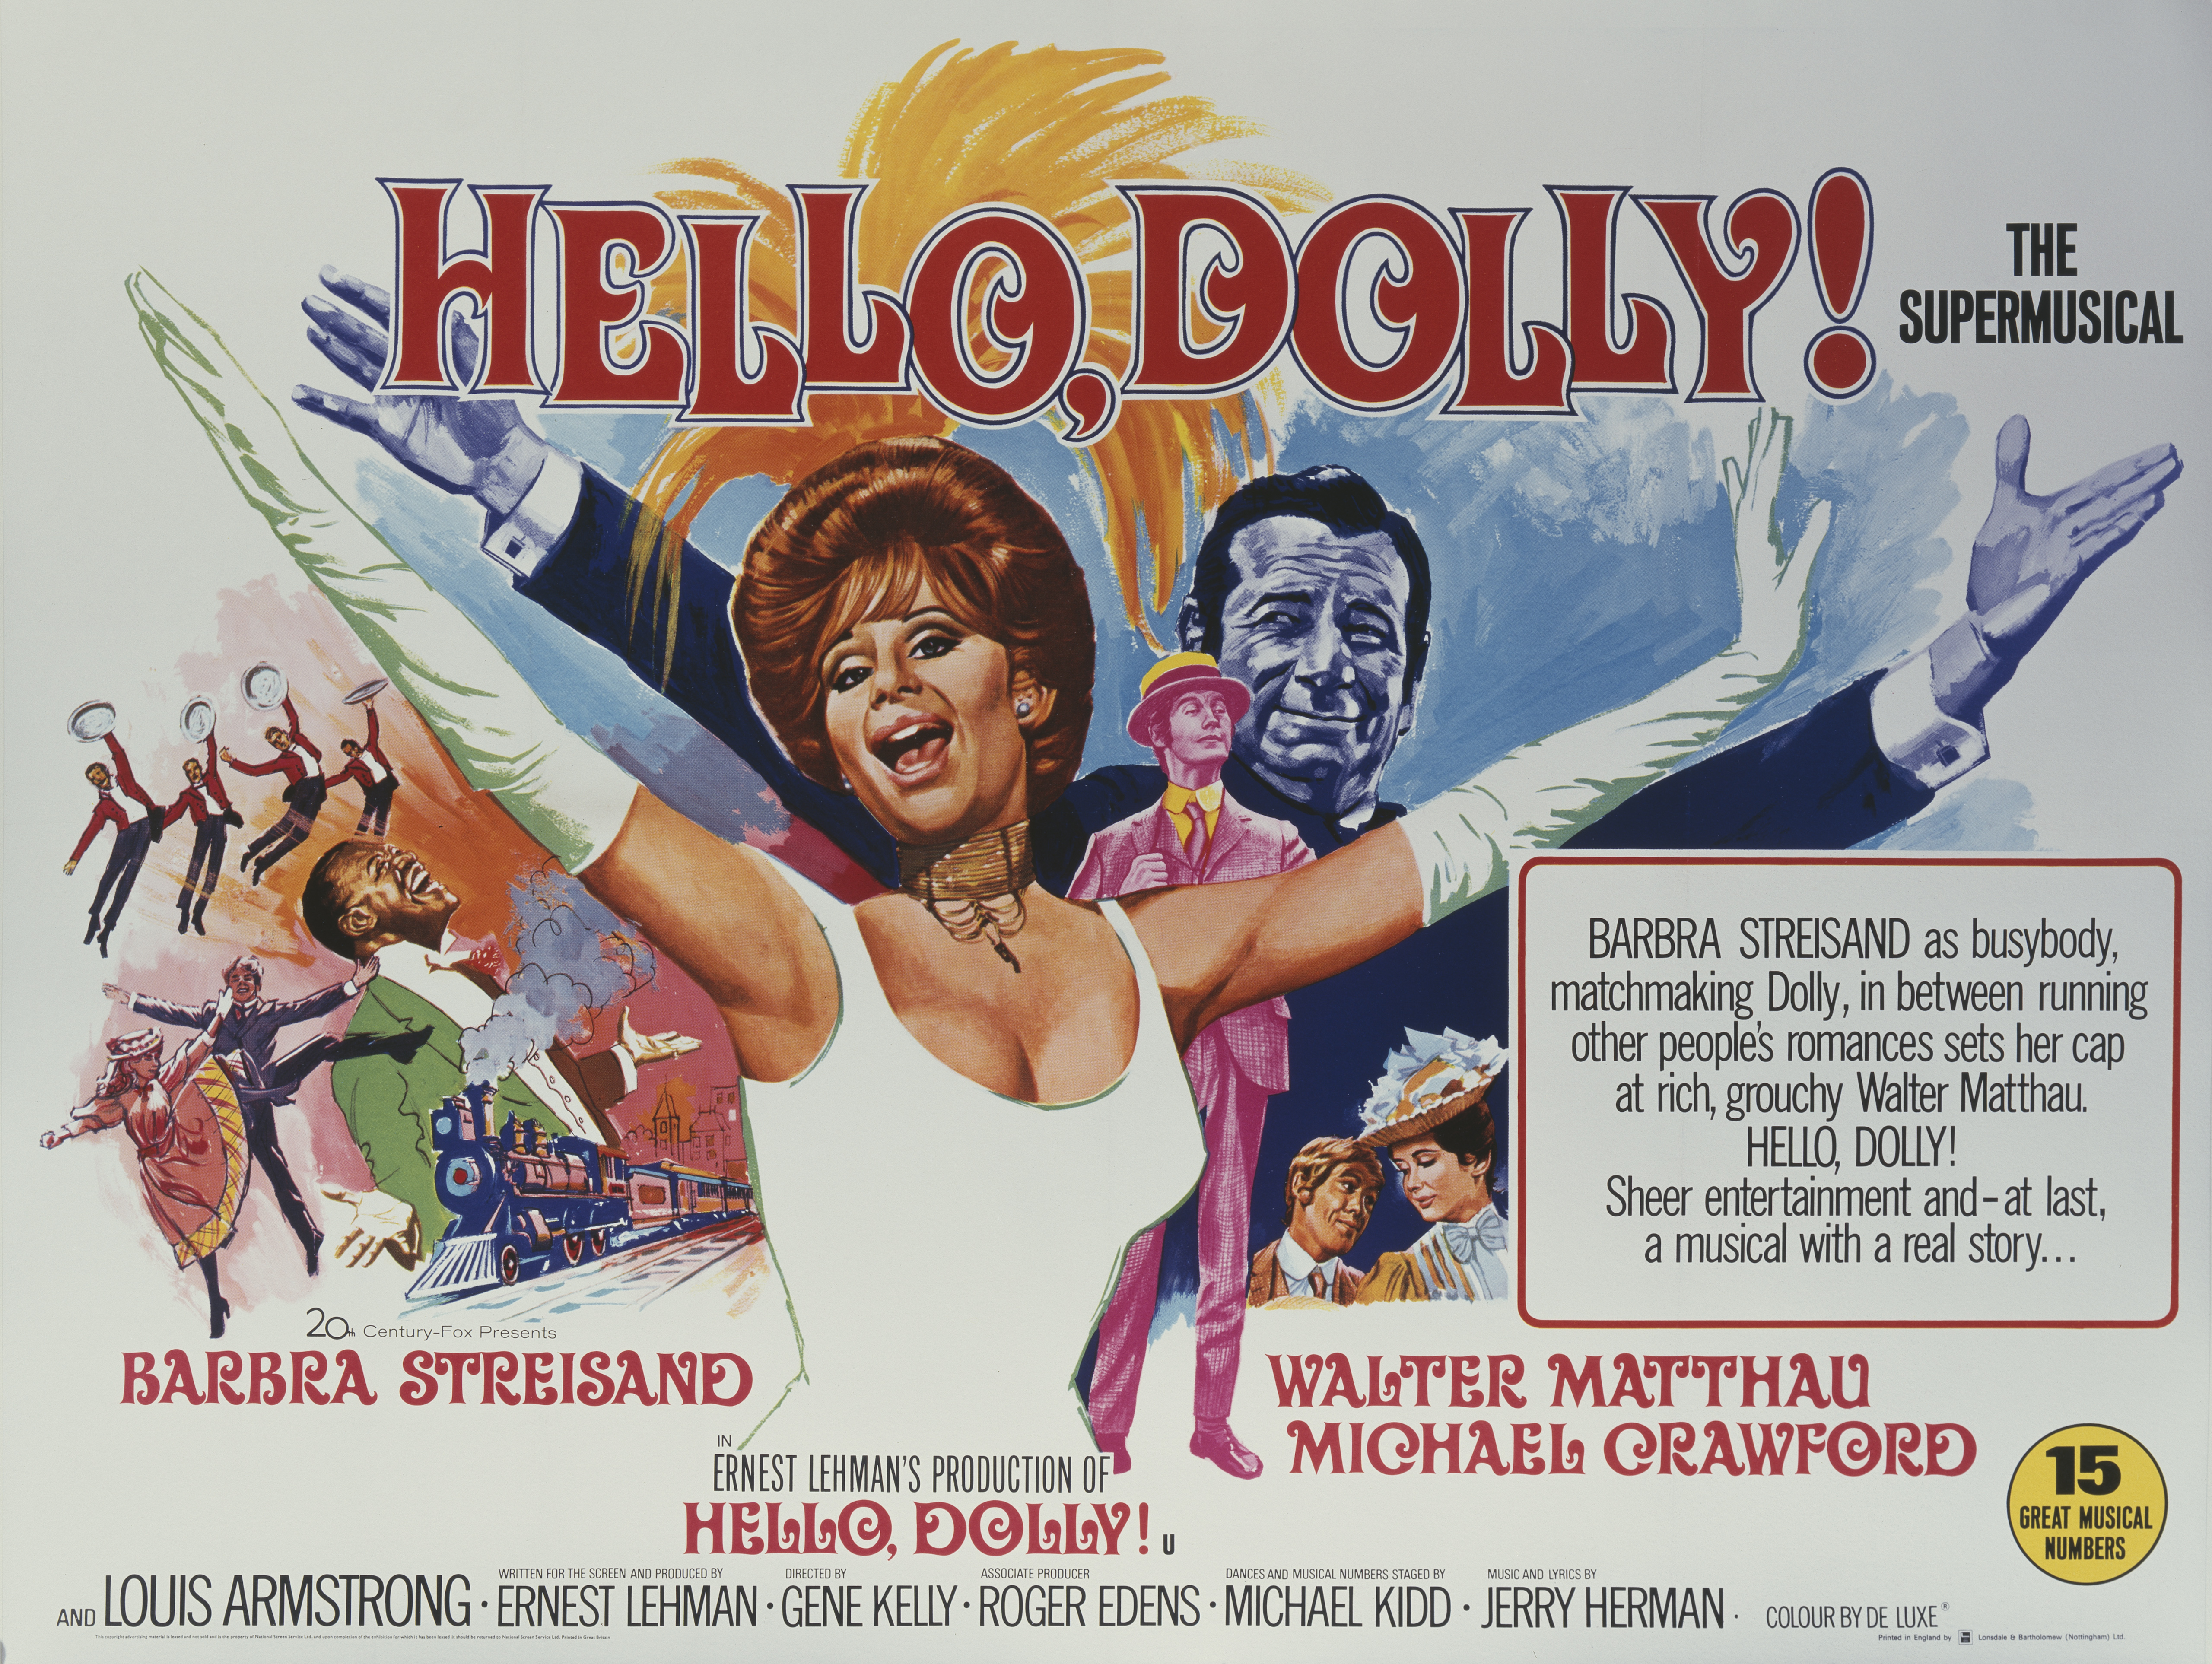 A British poster for Gene Kelly's 1969 romantic comedy musical film, 'Hello Dolly!', starring (left to right) Barbra Streisand,  Michael Crawford and Walter Matthau.